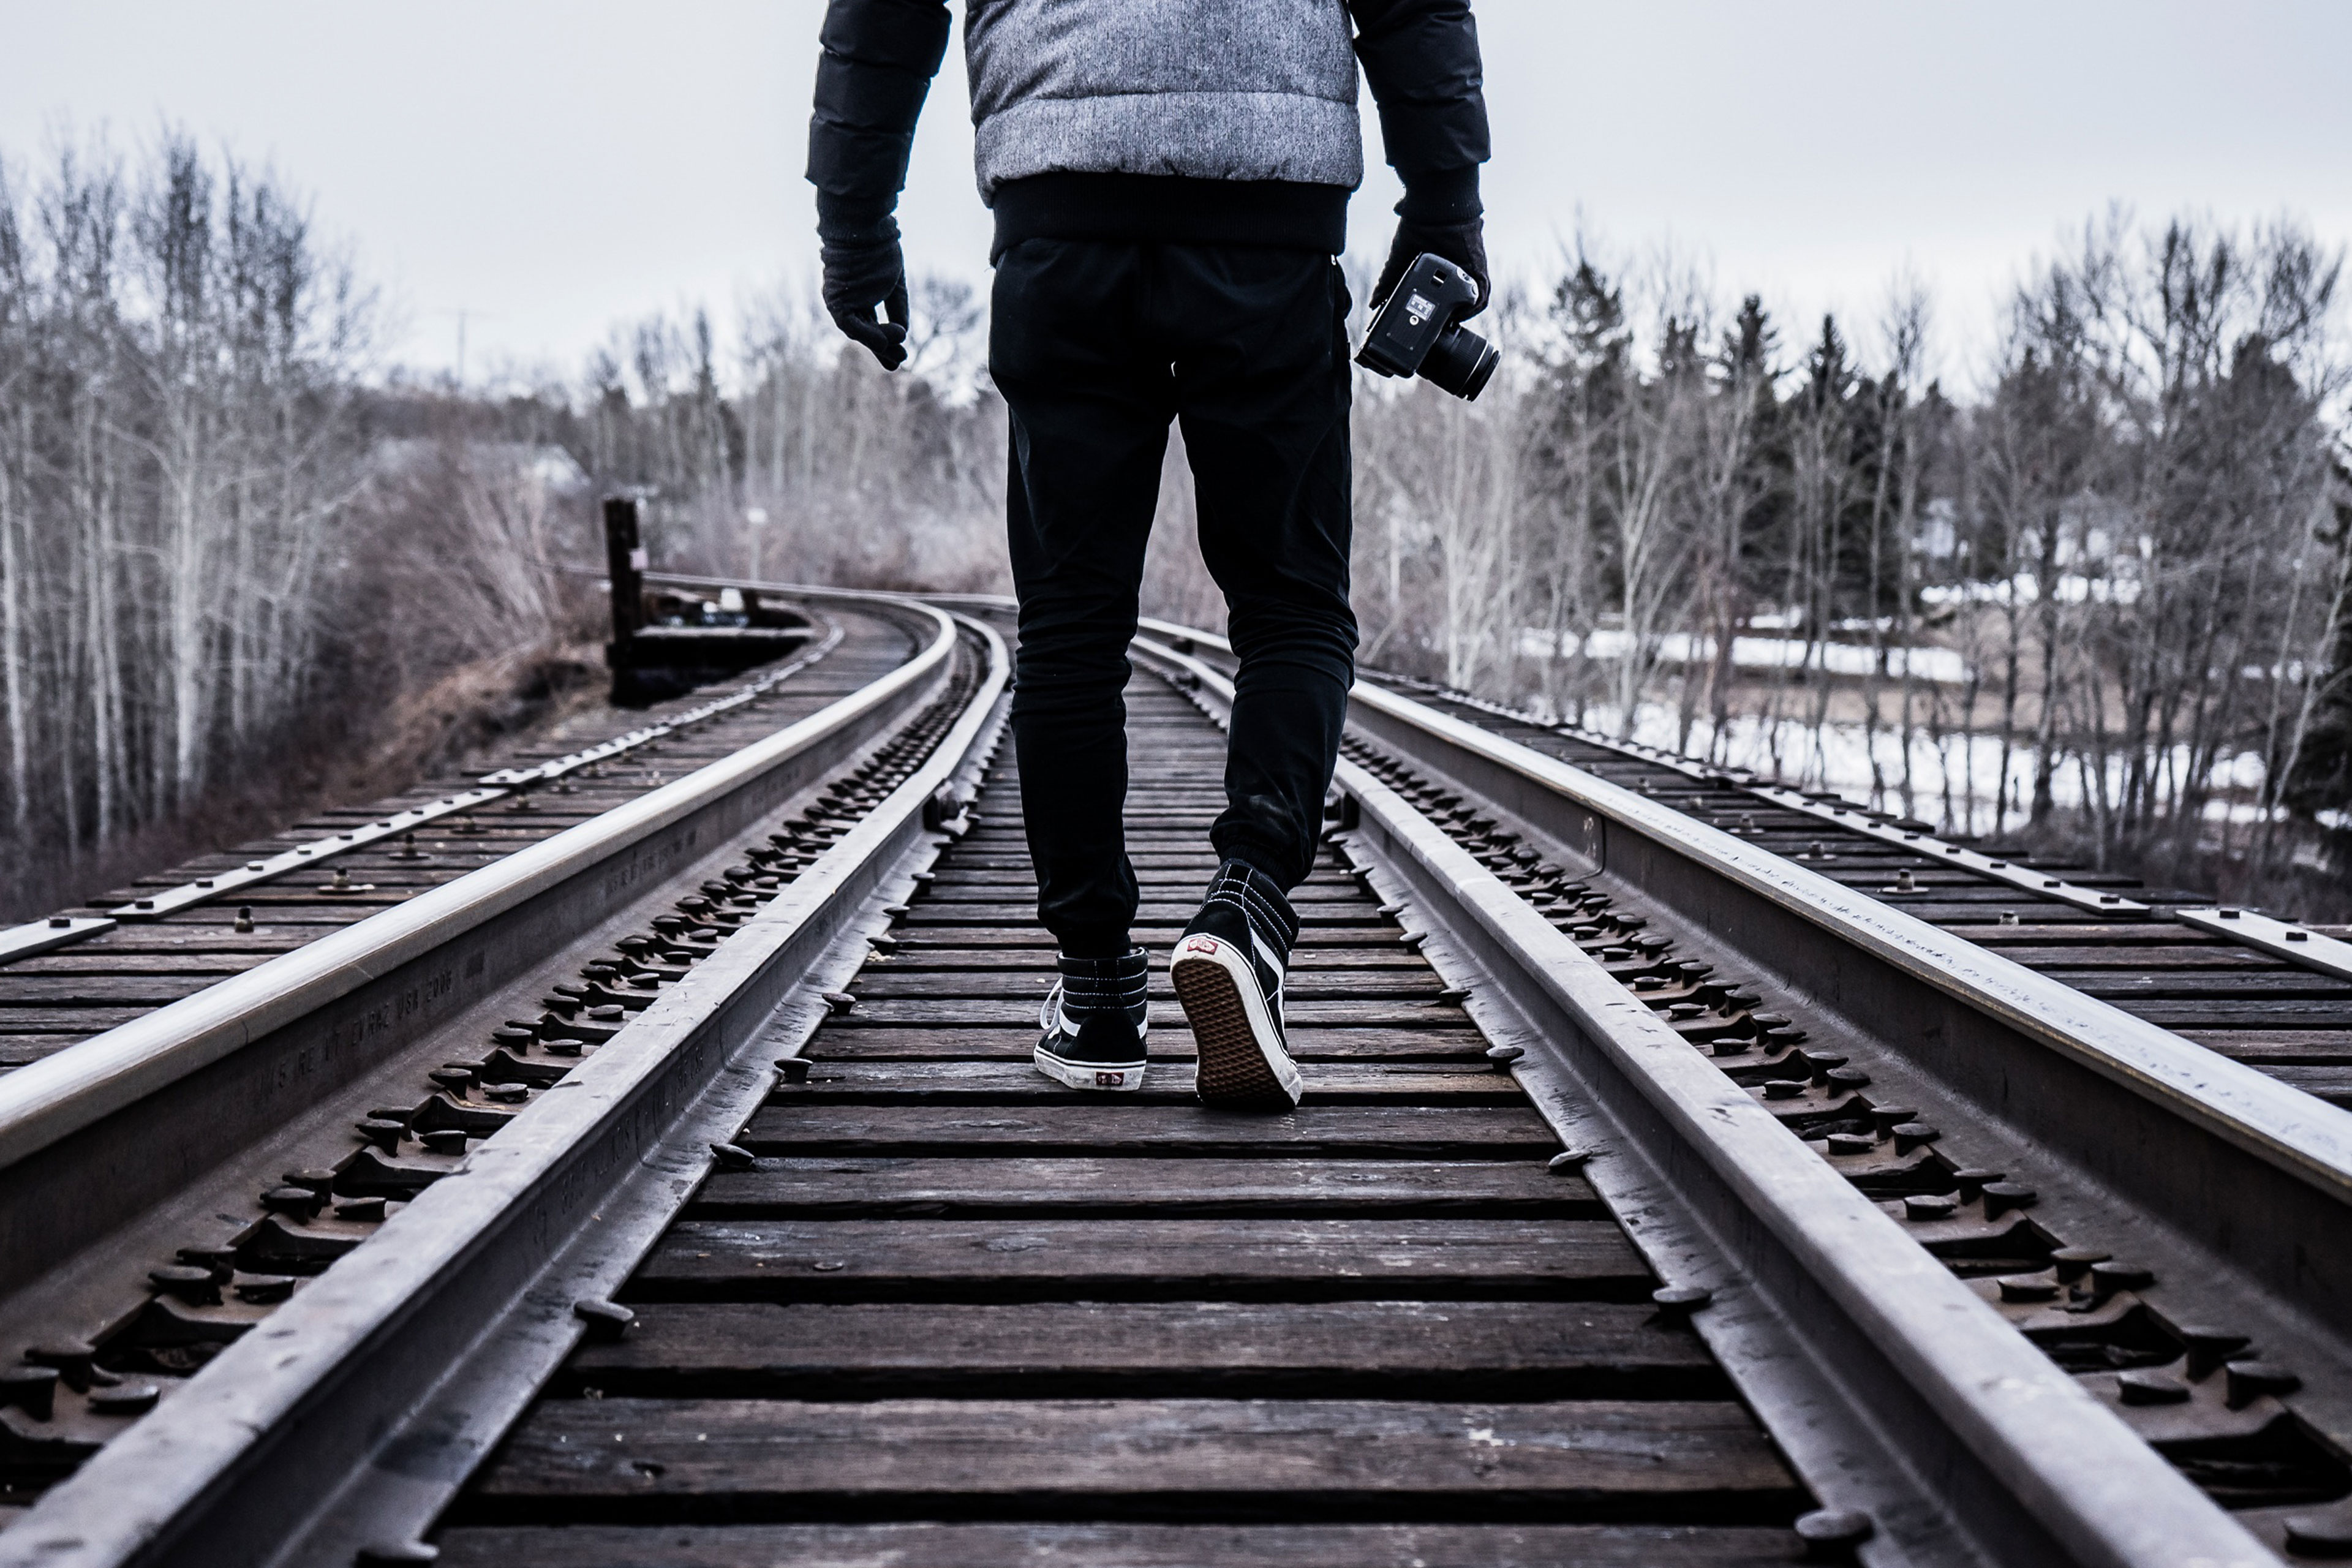 Guy walking on train tracks